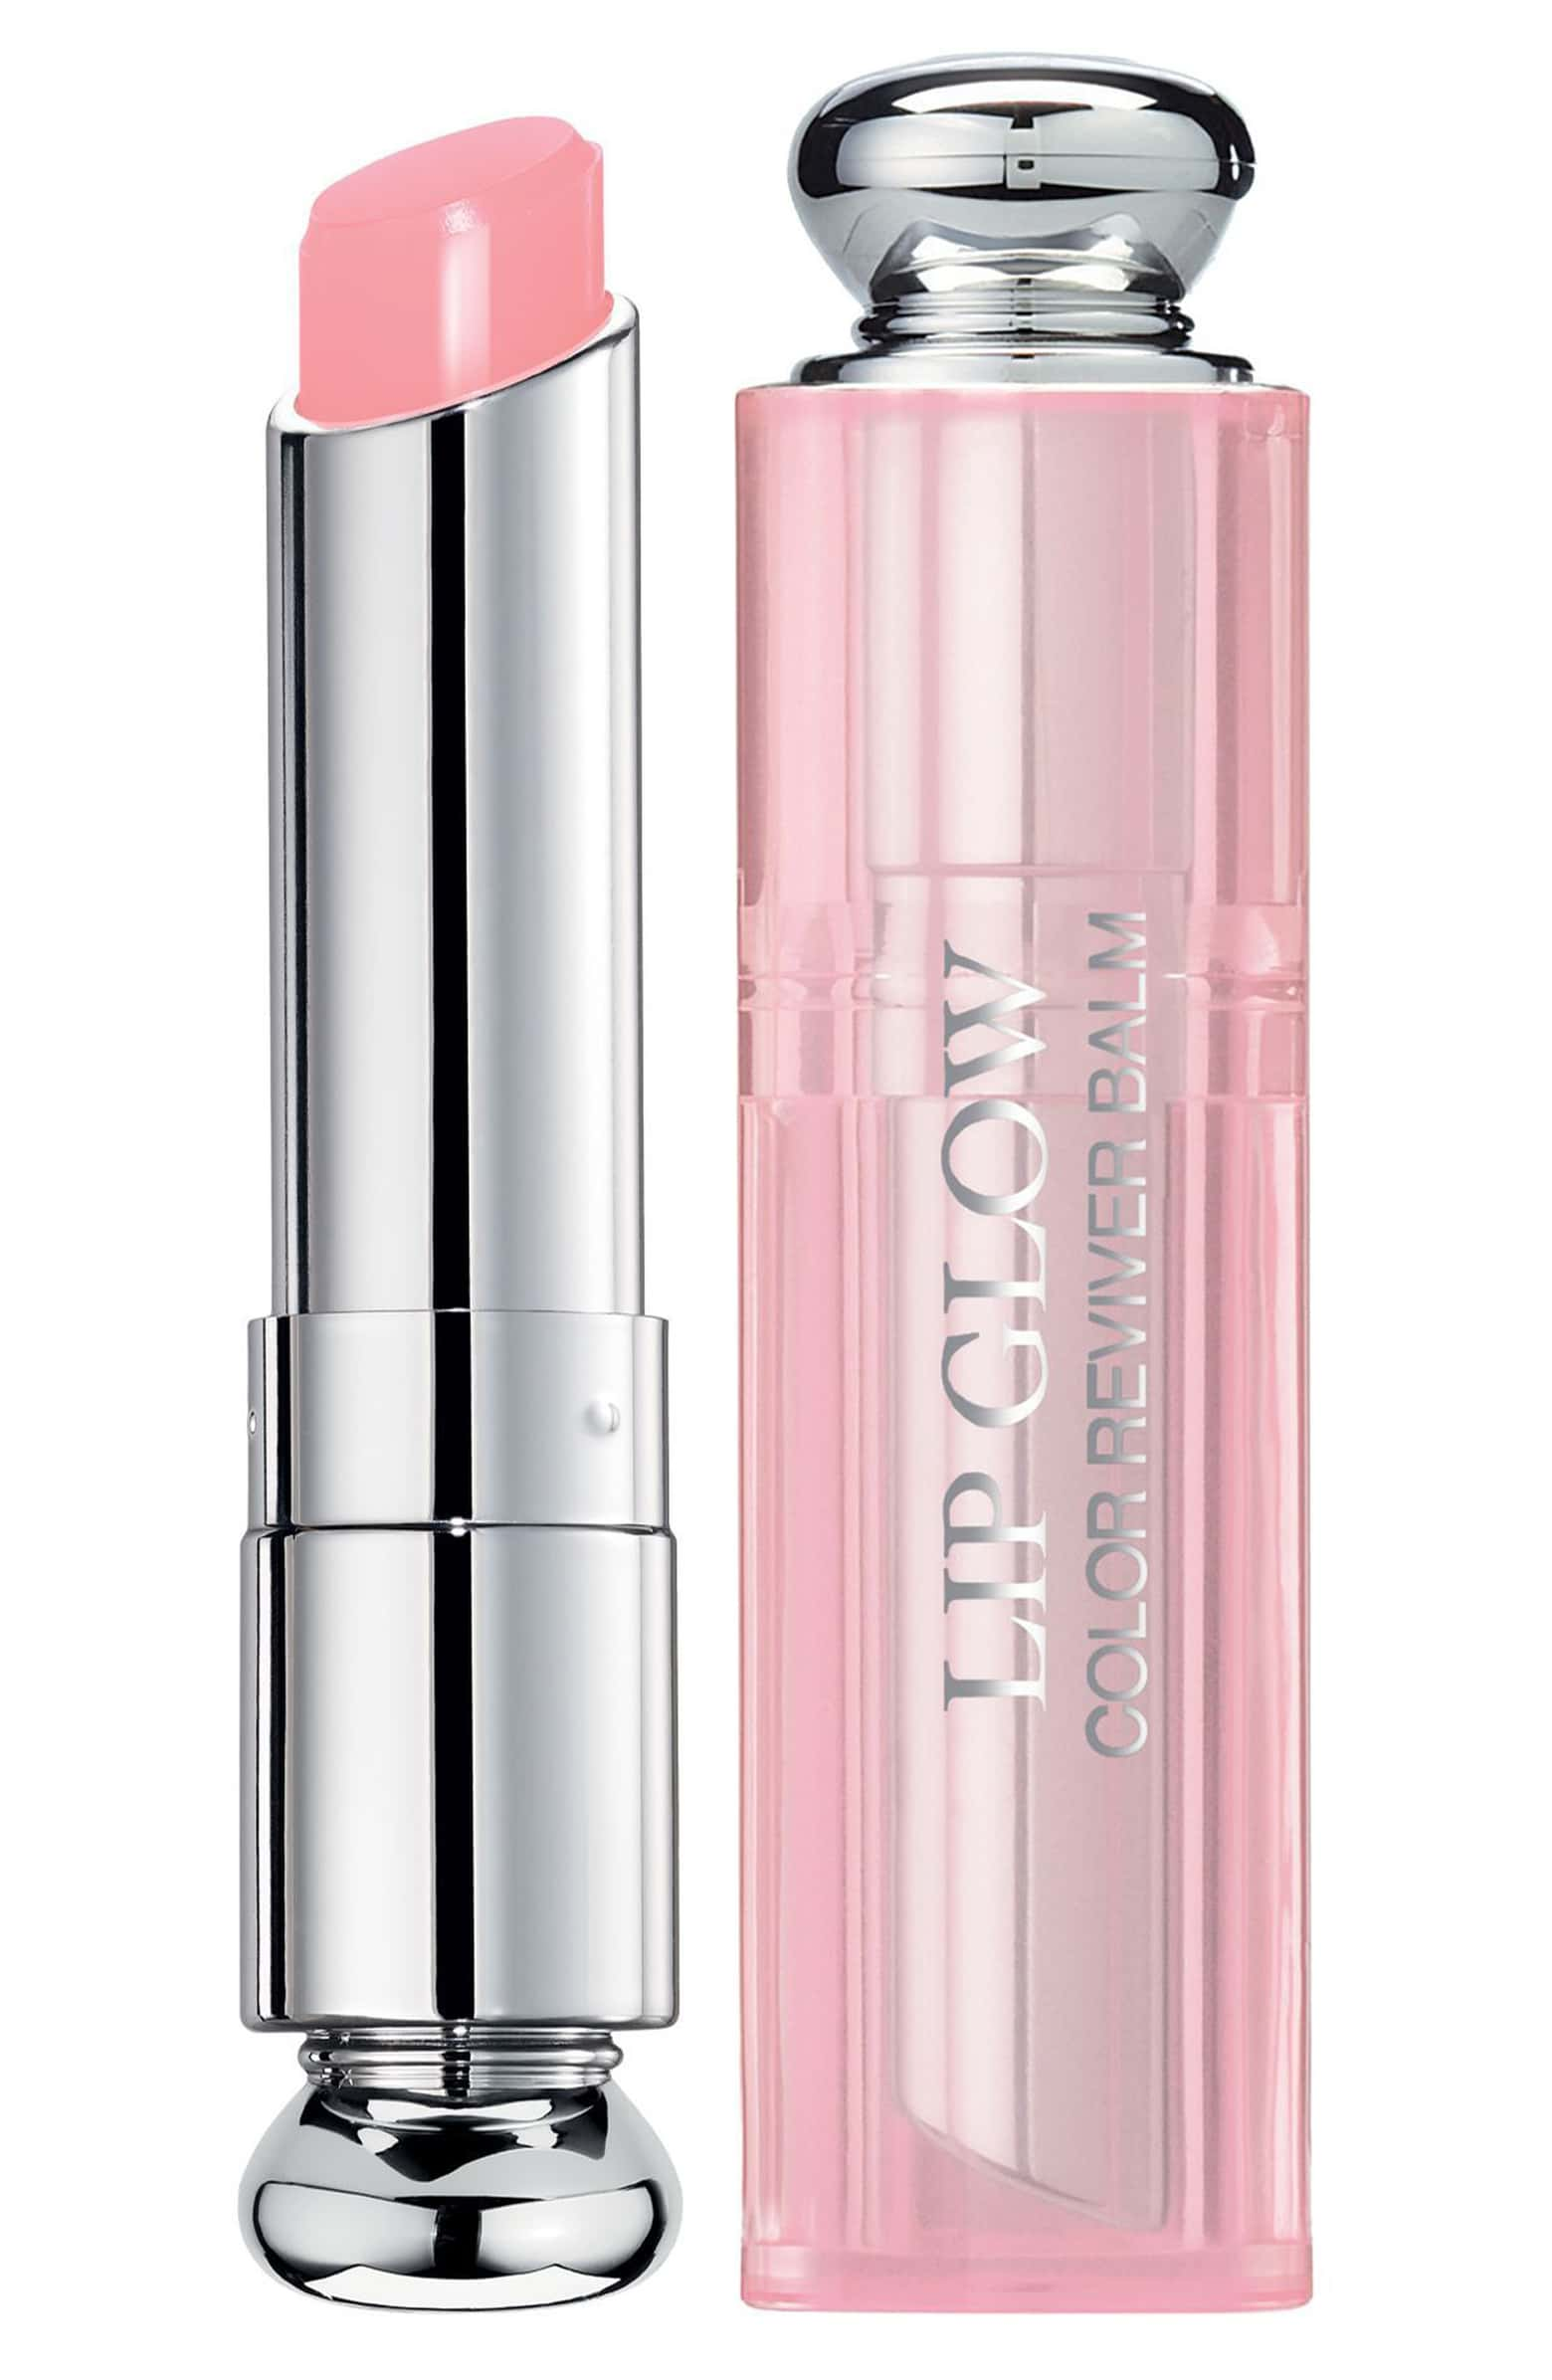 https://shop.nordstrom.com/s/dior-addict-lip-glow-color-reviving-lip-balm/3032812?origin=keywordsearch-personalizedsort&breadcrumb=Home%2FAll%20Results&color=001%20pink%20%2F%20glow